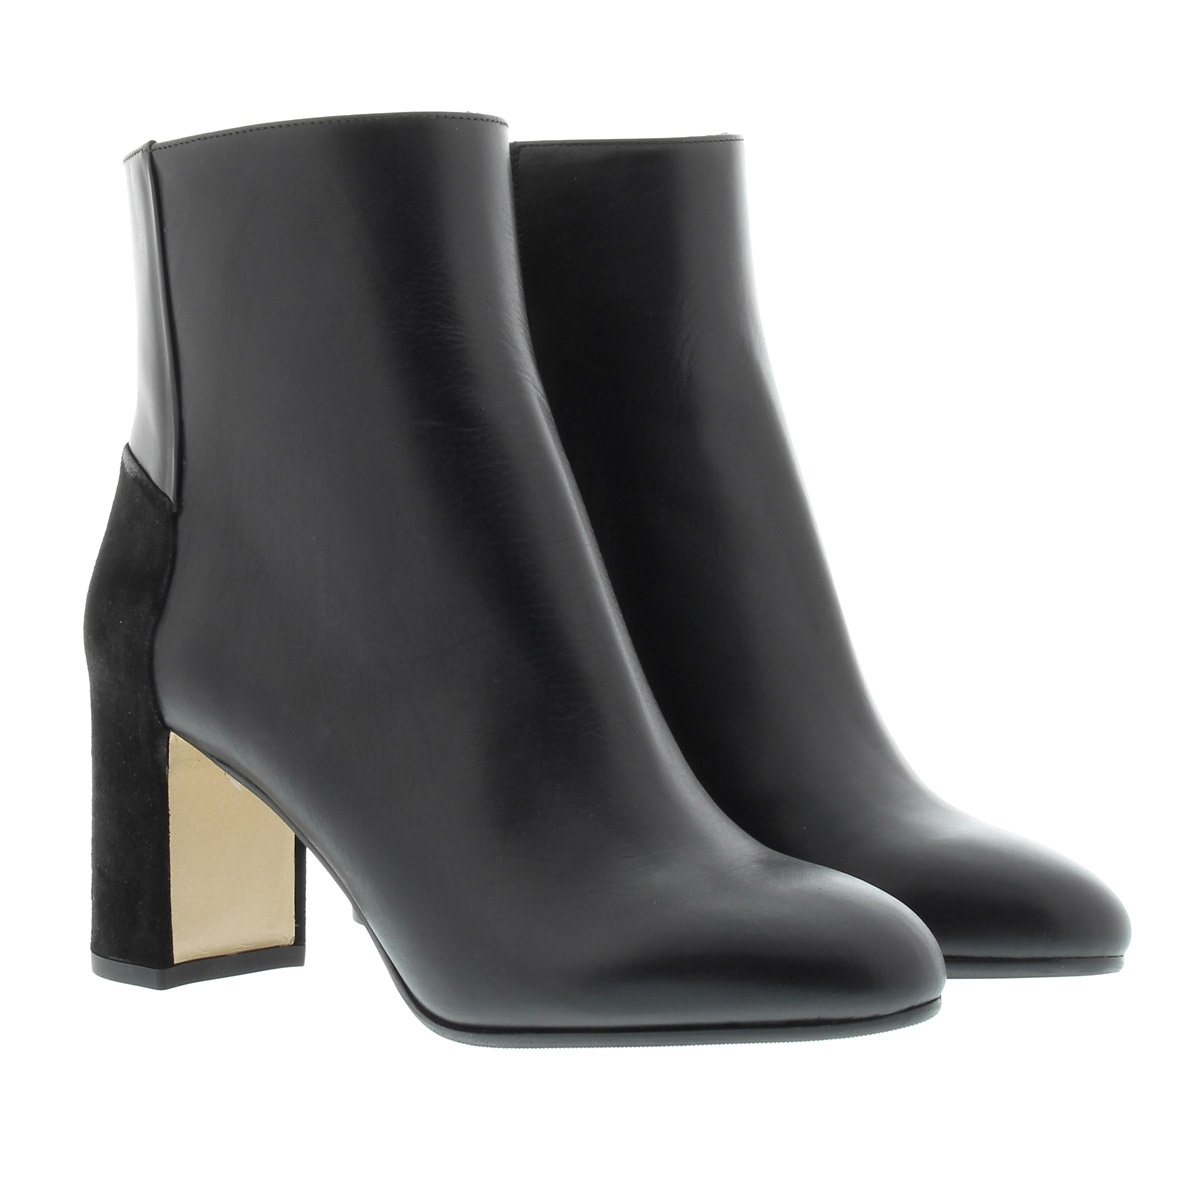 Fashionette Hugo Boss Booties